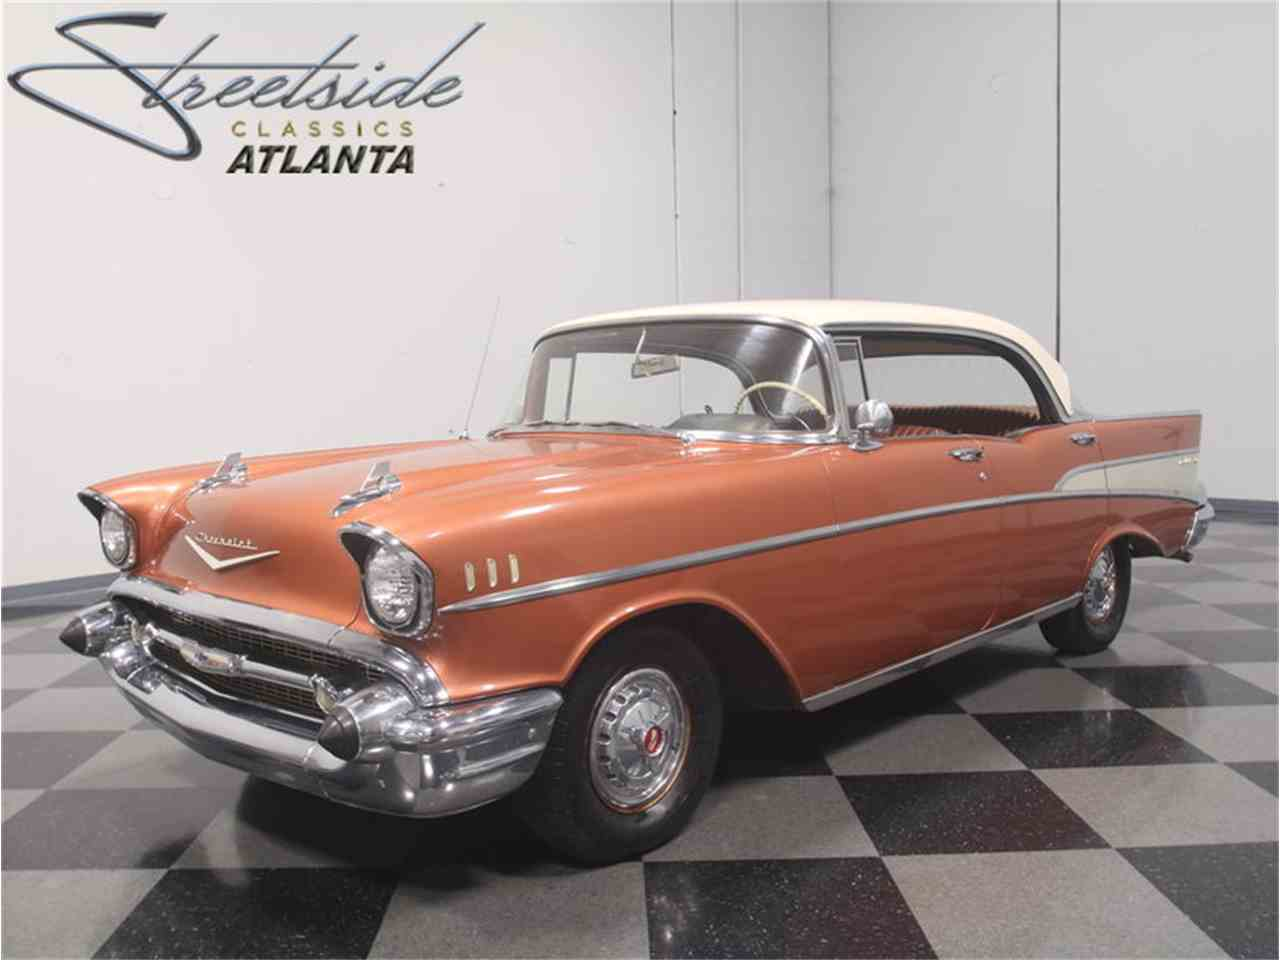 Chevrolet bel air hardtop for sale upcoming chevrolet - 1957 Chevrolet Bel Air Hard Top For Sale Cc 1017588